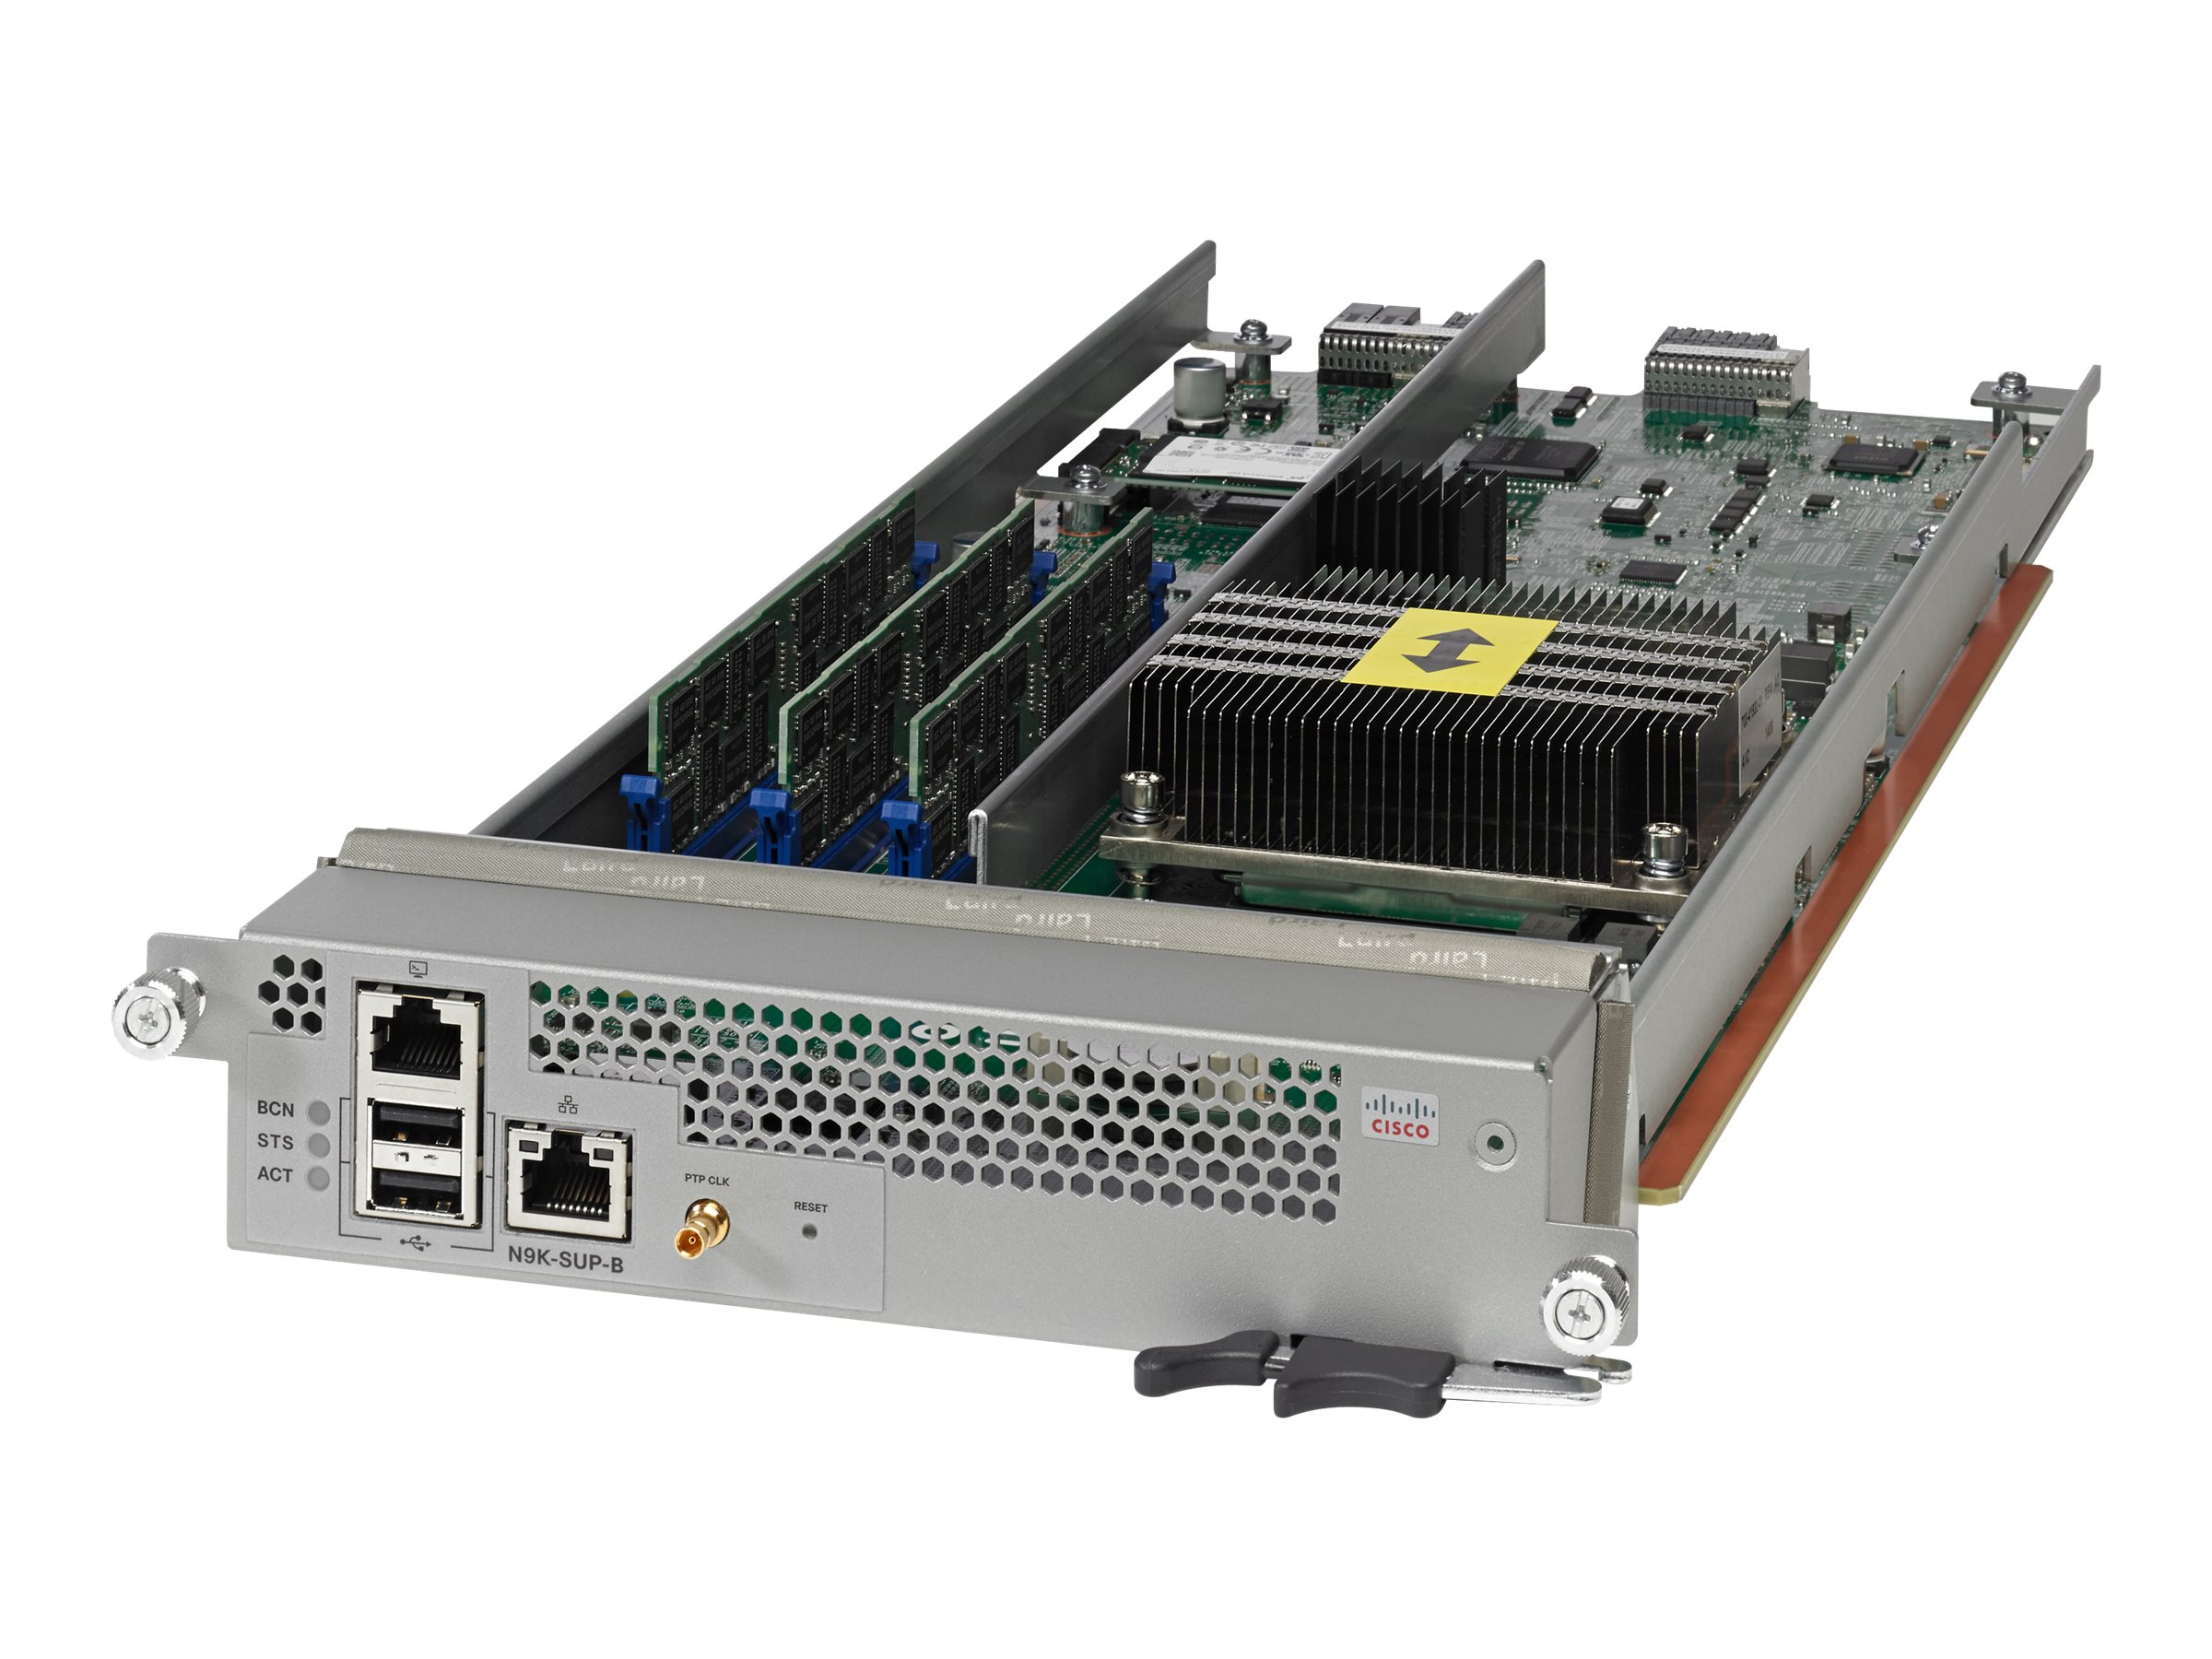 Cisco N9K-SUP-B Image 1